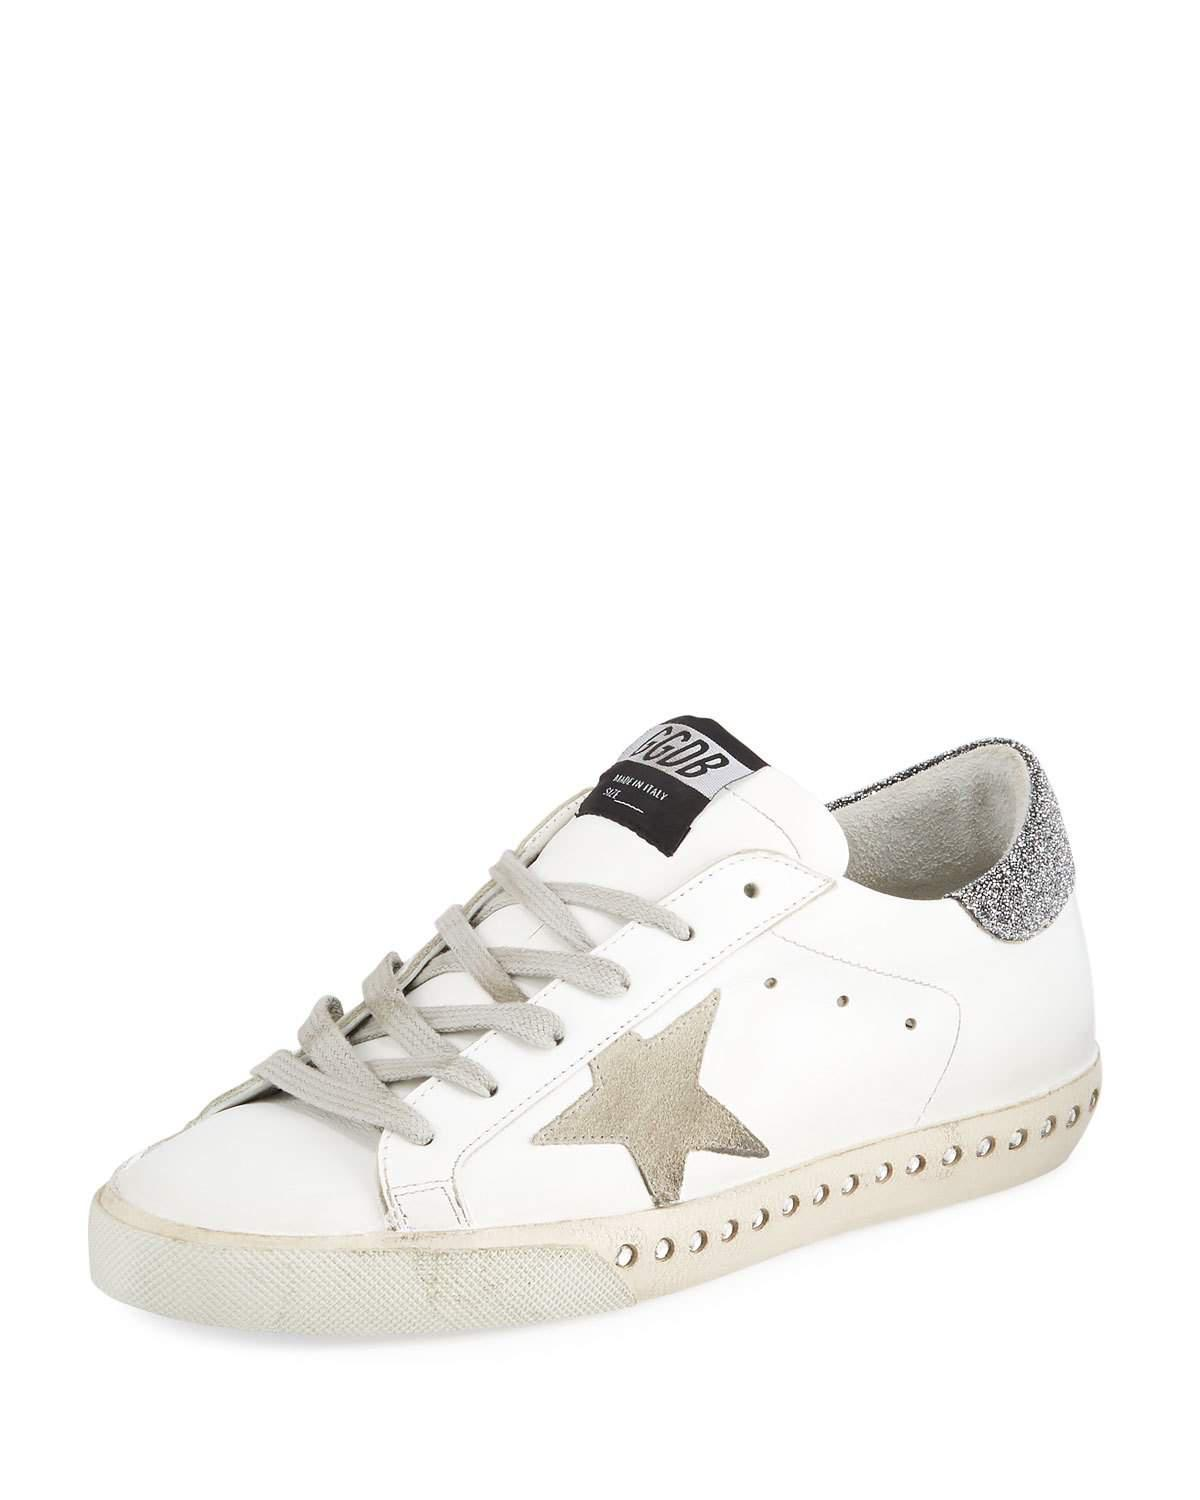 cc9d06b8a8c golden-goose-deluxe-brand-WHITESILVER-Superstar-Leather-Low-top-Sneakers -With-Crystal-Base.jpeg